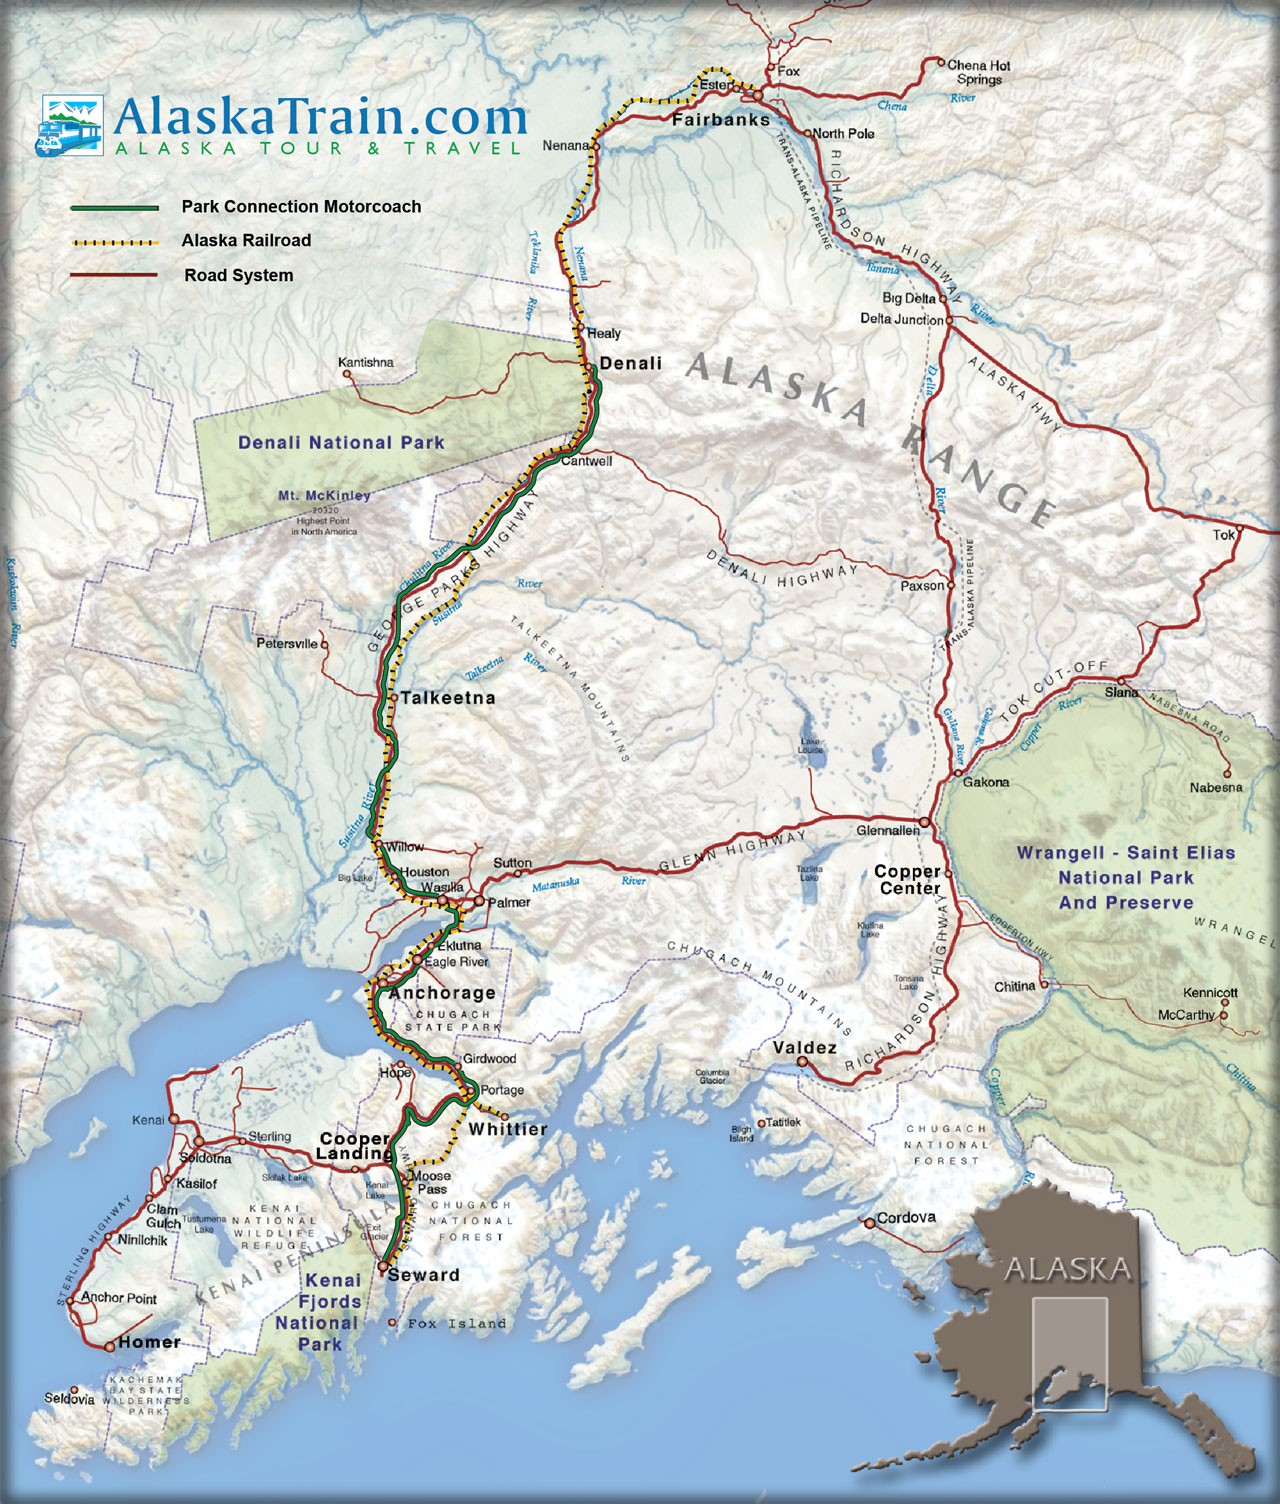 Alaska Railroad Map Alaska Train Maps AlaskaTraincom